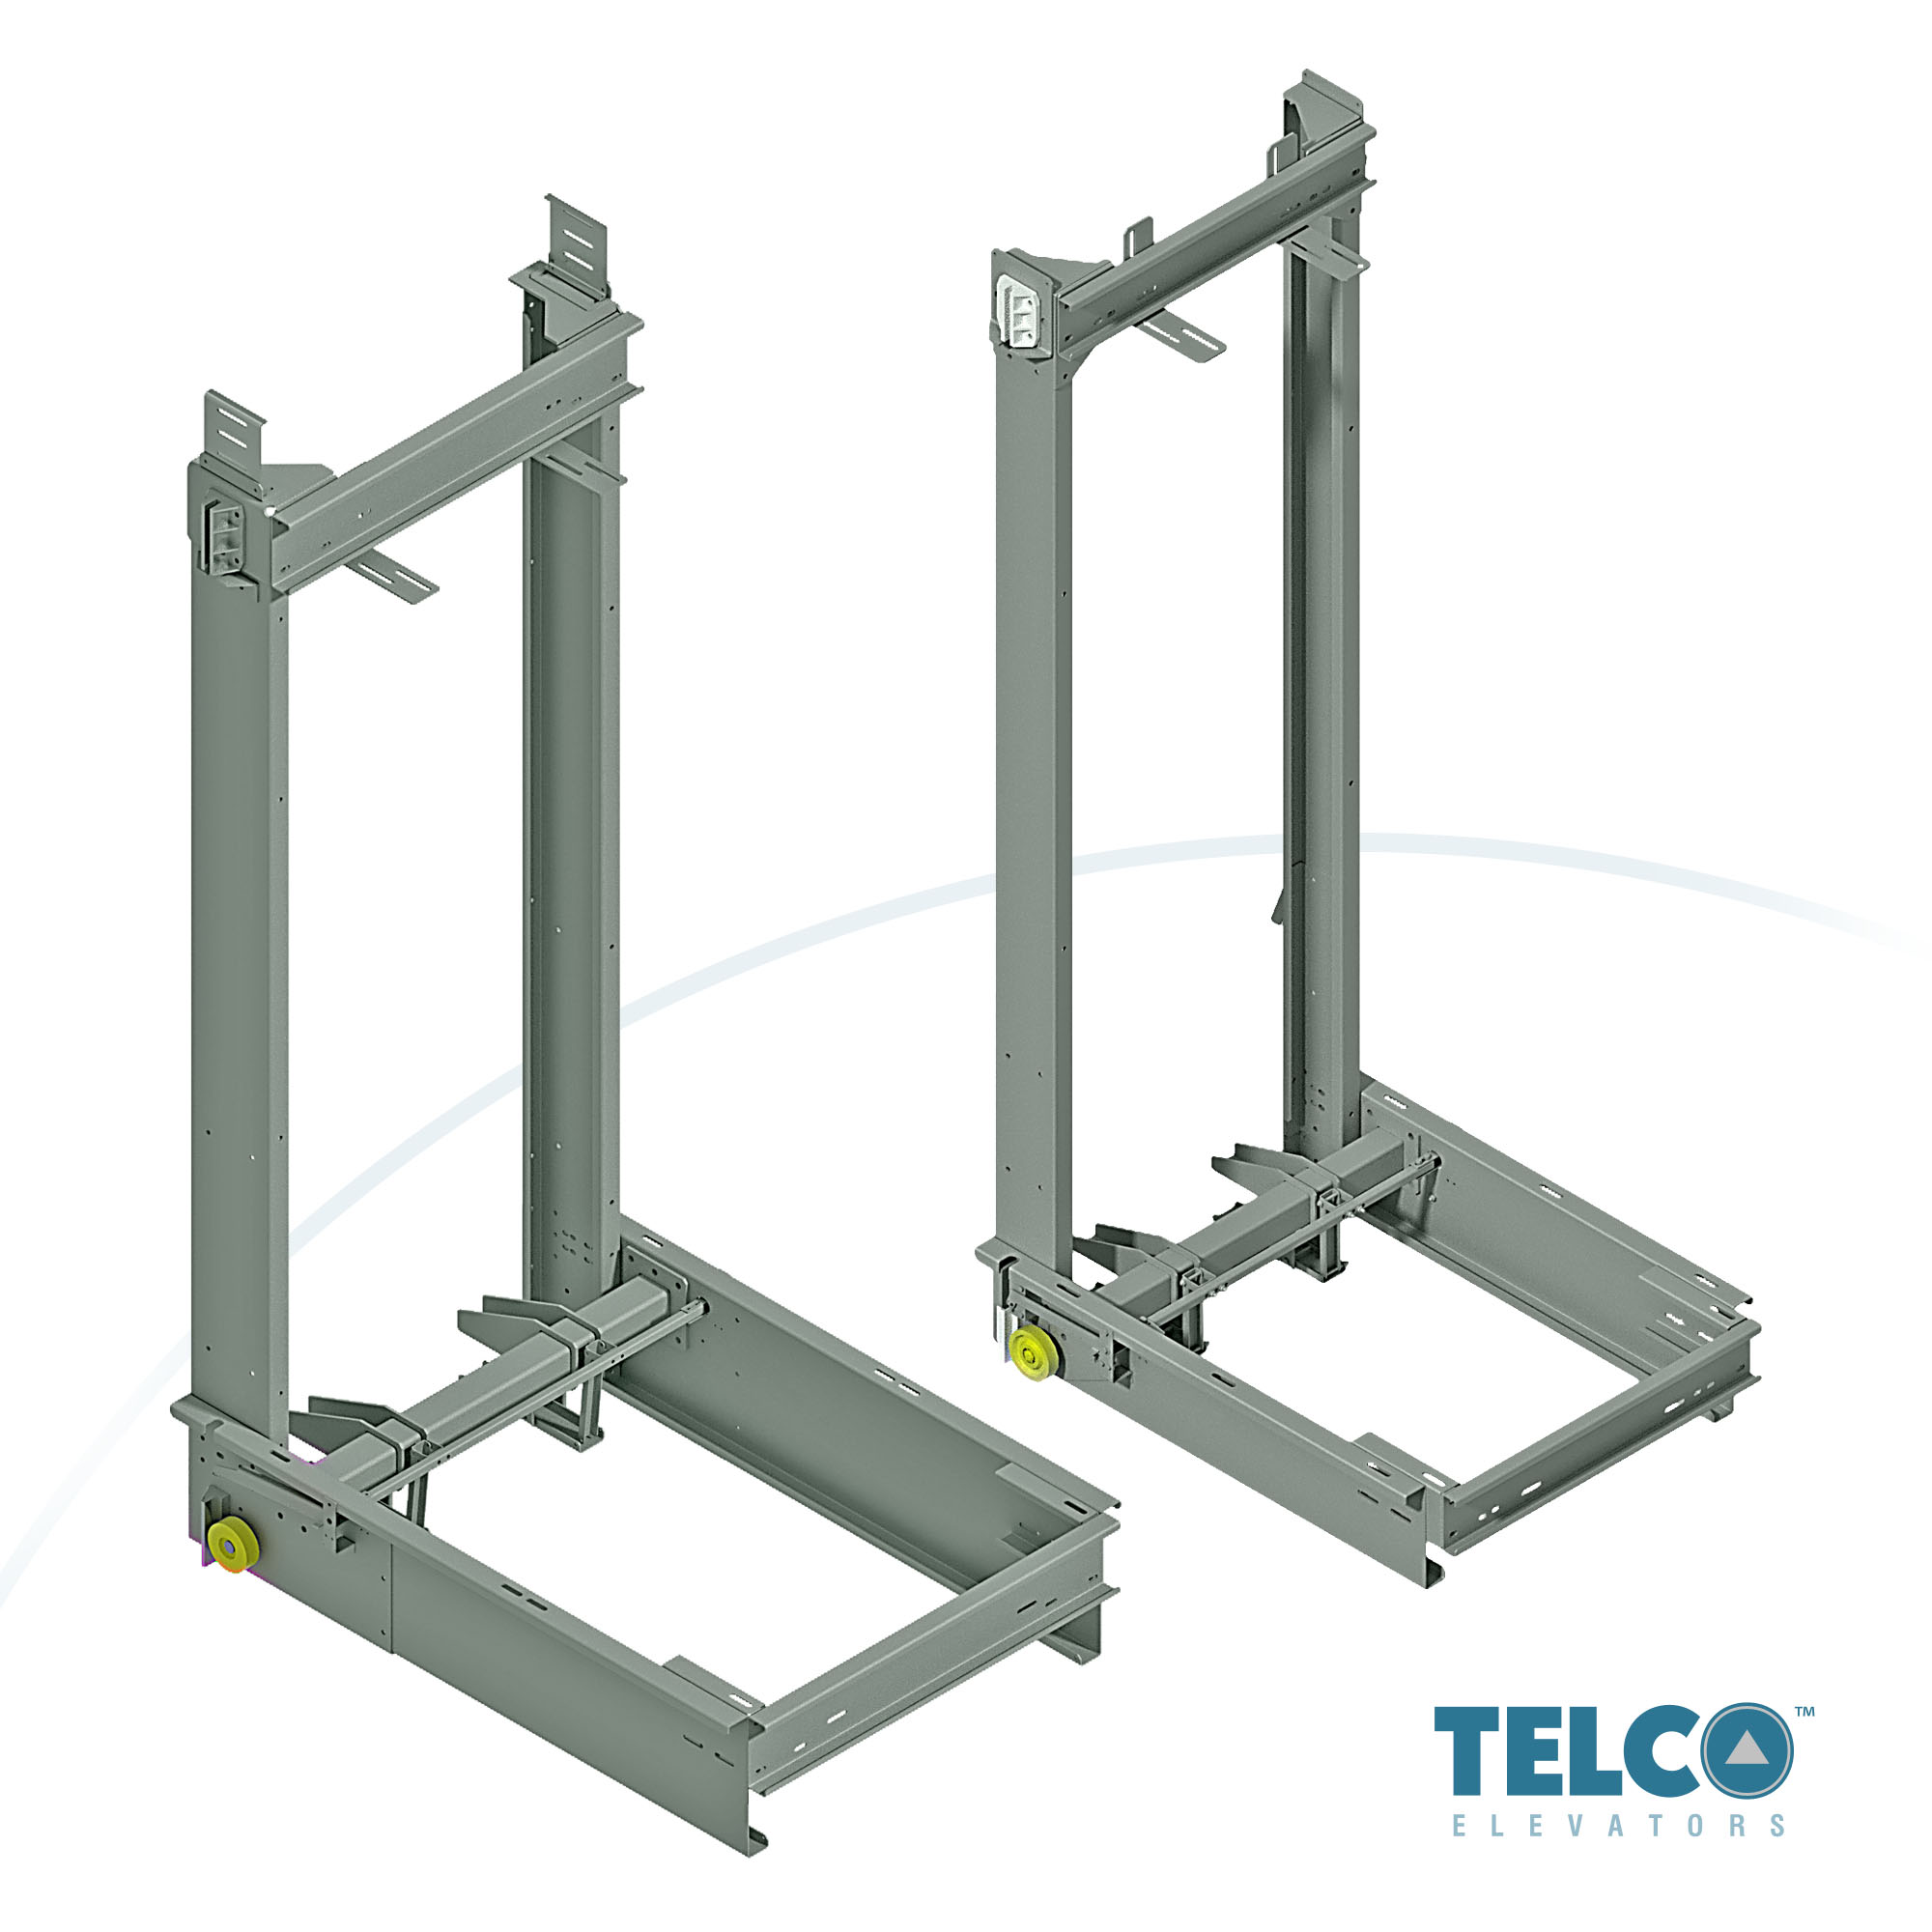 Lift chasis 01 by TELCO™